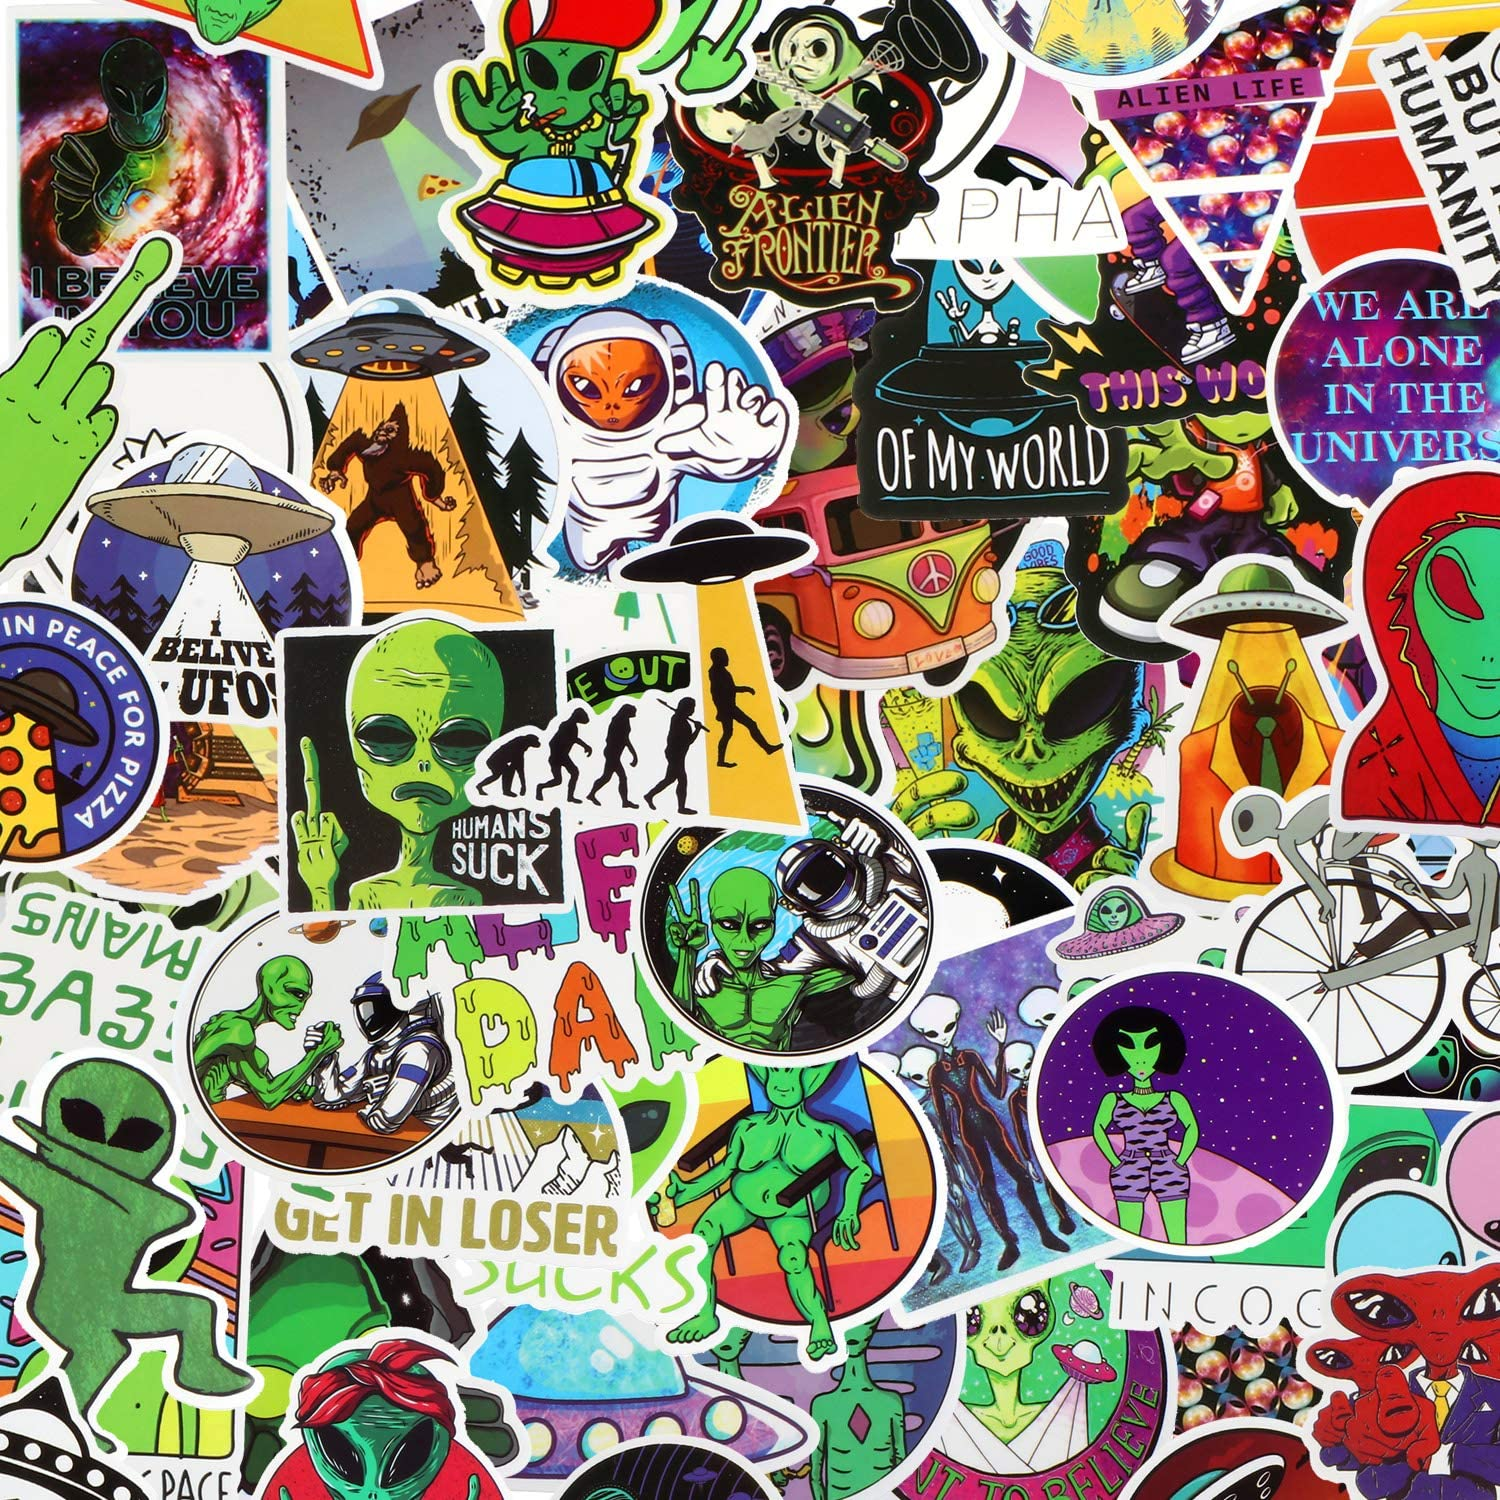 100 Pieces Alien Stickers Water Bottle Laptop Stickers Cool Graffiti UFO Human Sticker Aesthetic Decals for Car, Skateboard, Motorcycle, Phone, Bicycle, Luggage, Guitar, Bike